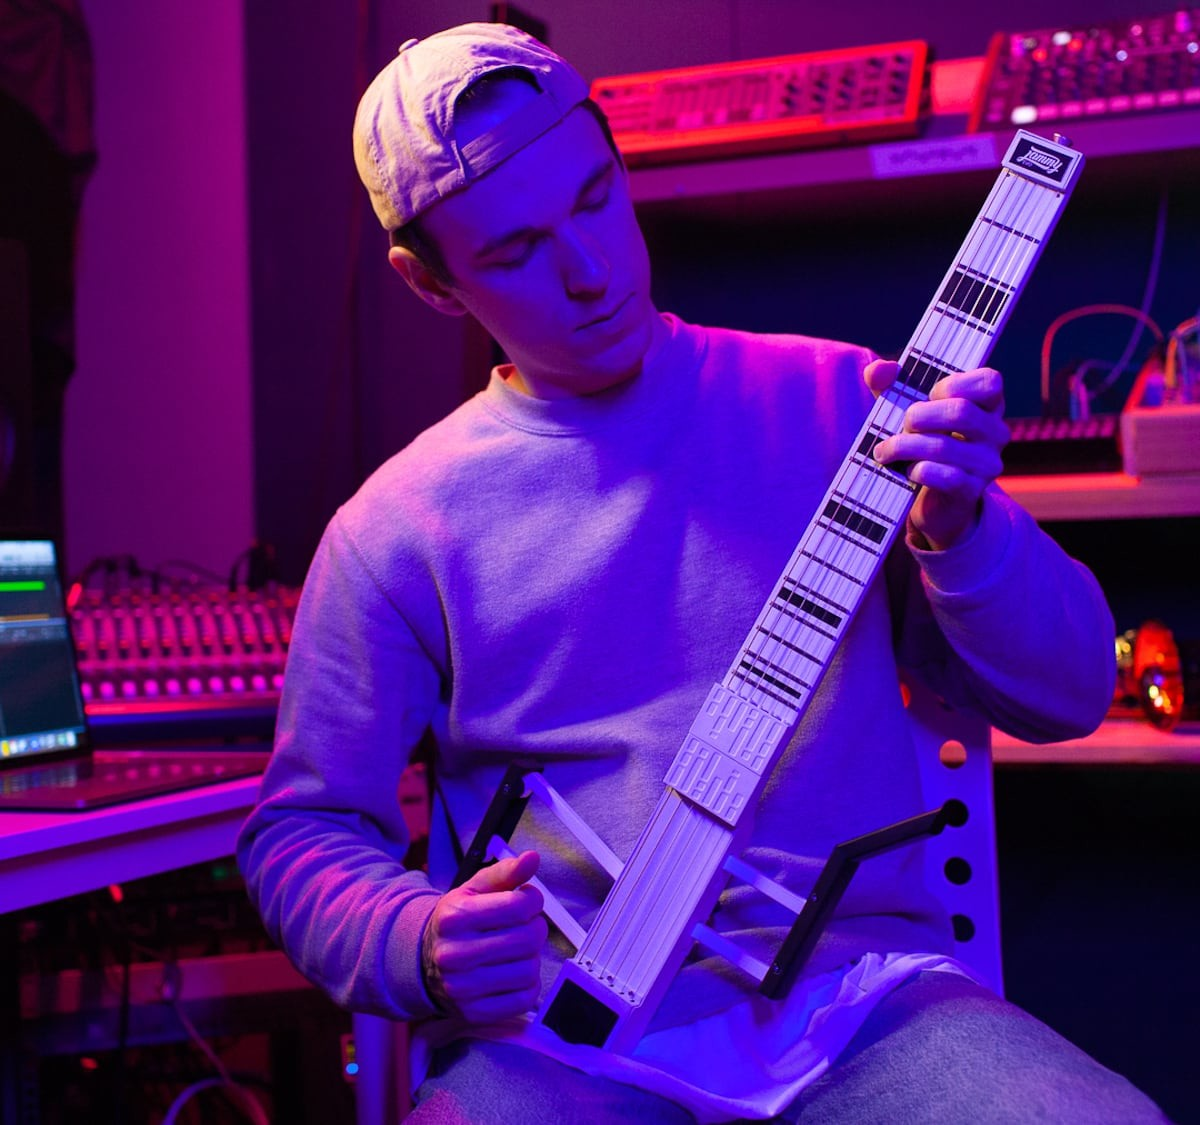 Jammy EVO Guitar MIDI Controller lets you create music in any genre